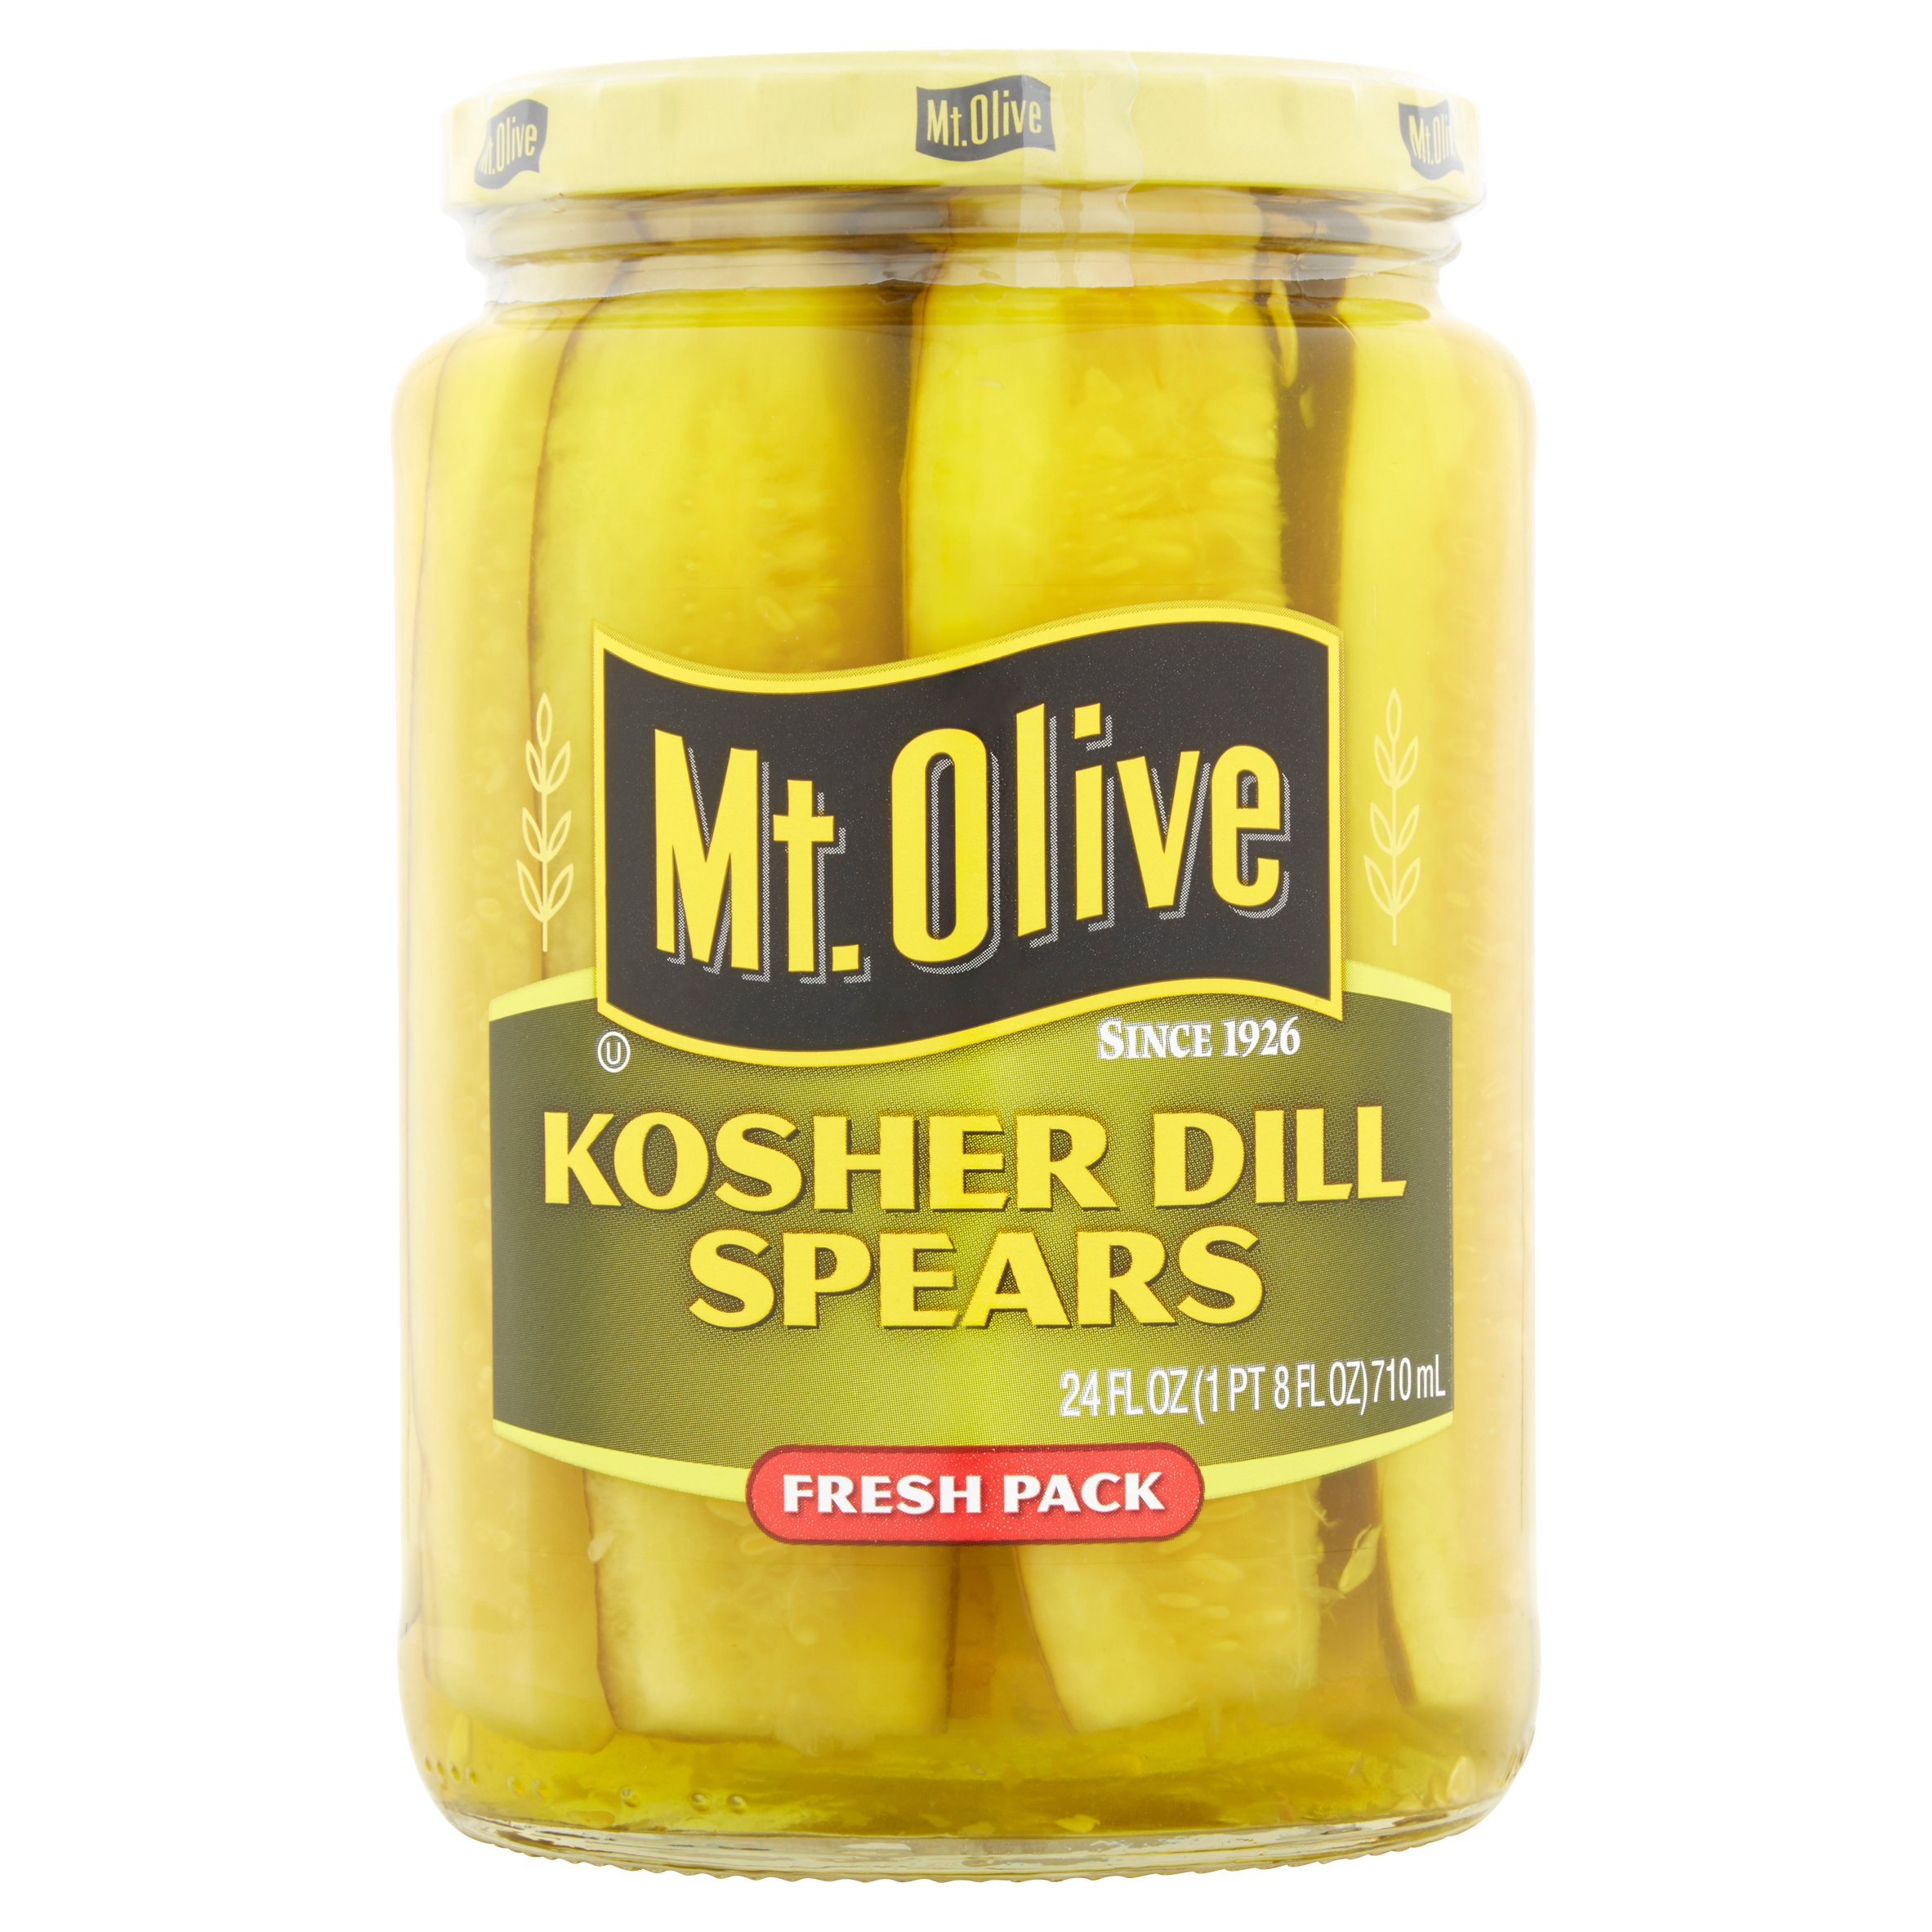 Mt. Olive Kosher Dill Spears Fresh Pack Pickles 24 fl. oz. Jar